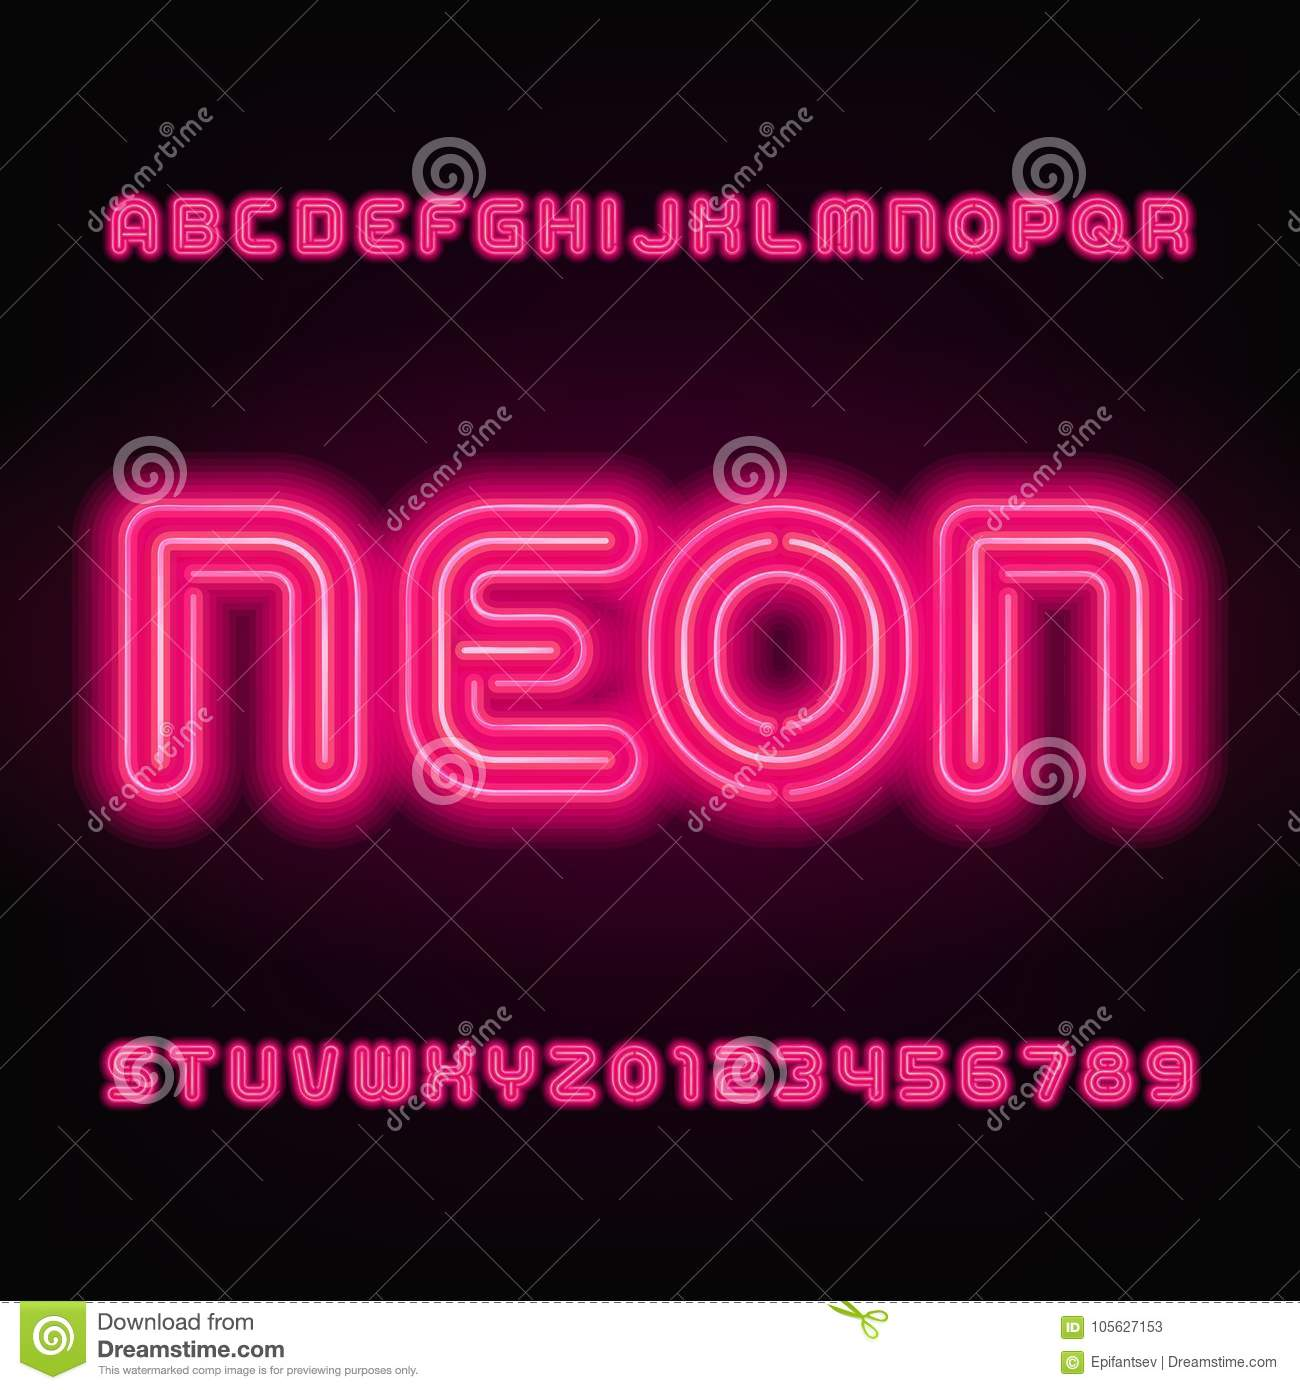 Neon Tube Alphabet Font. Red Color Letters And Numbers. Stock Vector ...